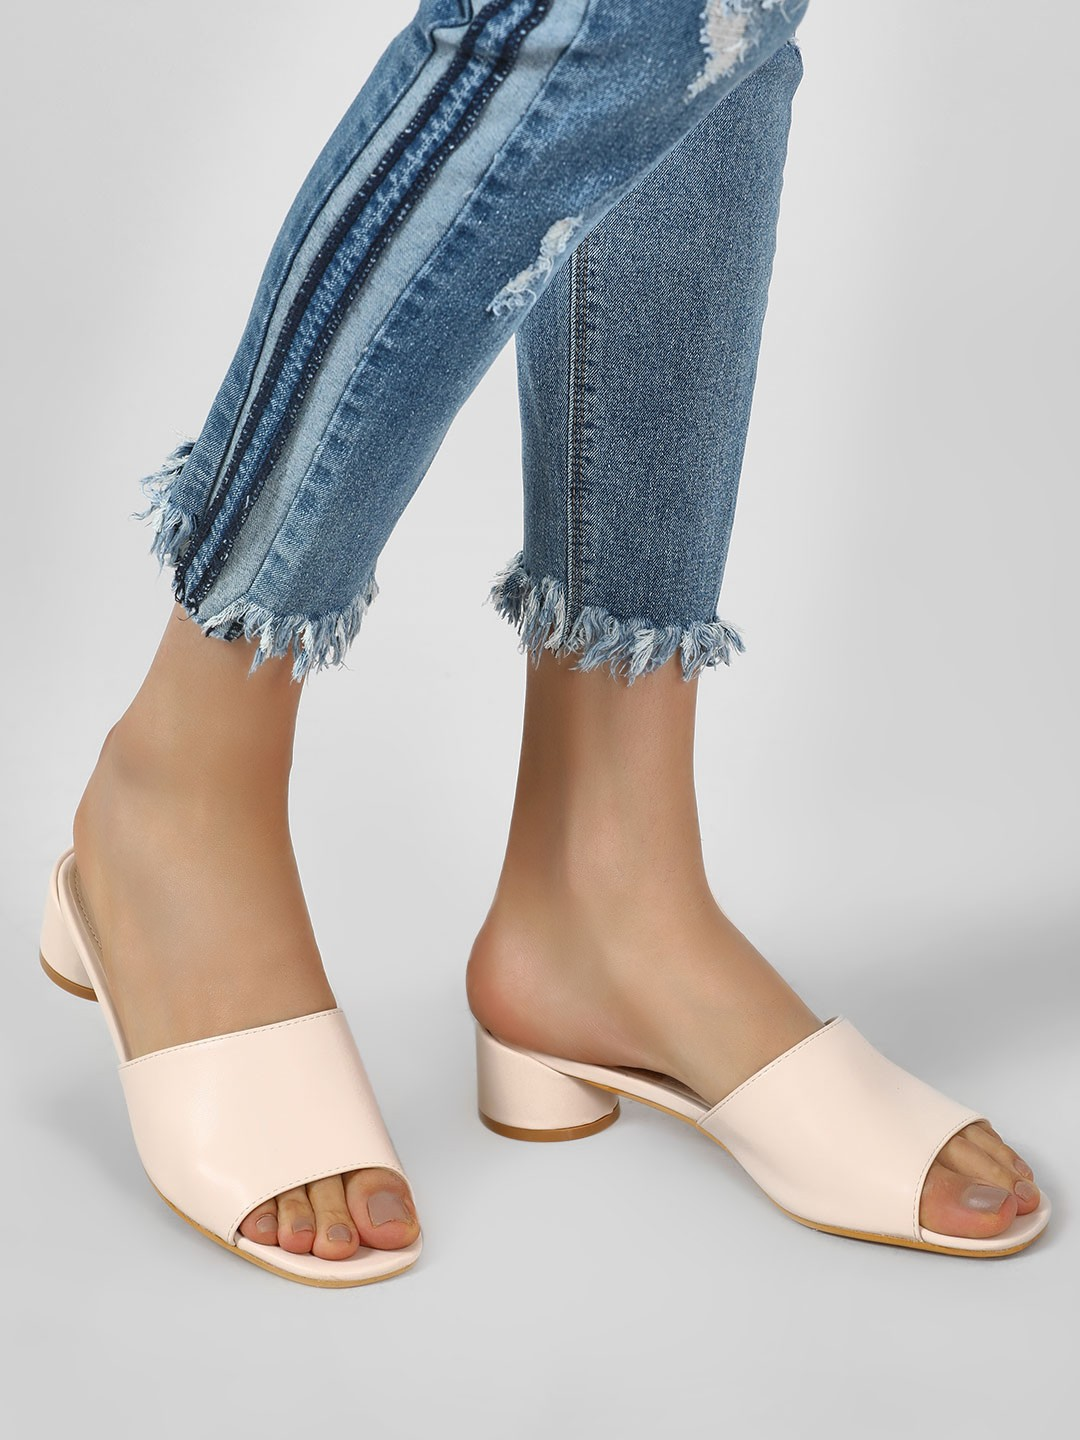 Intoto Nude Mules With Short Cylindrical Heels 1